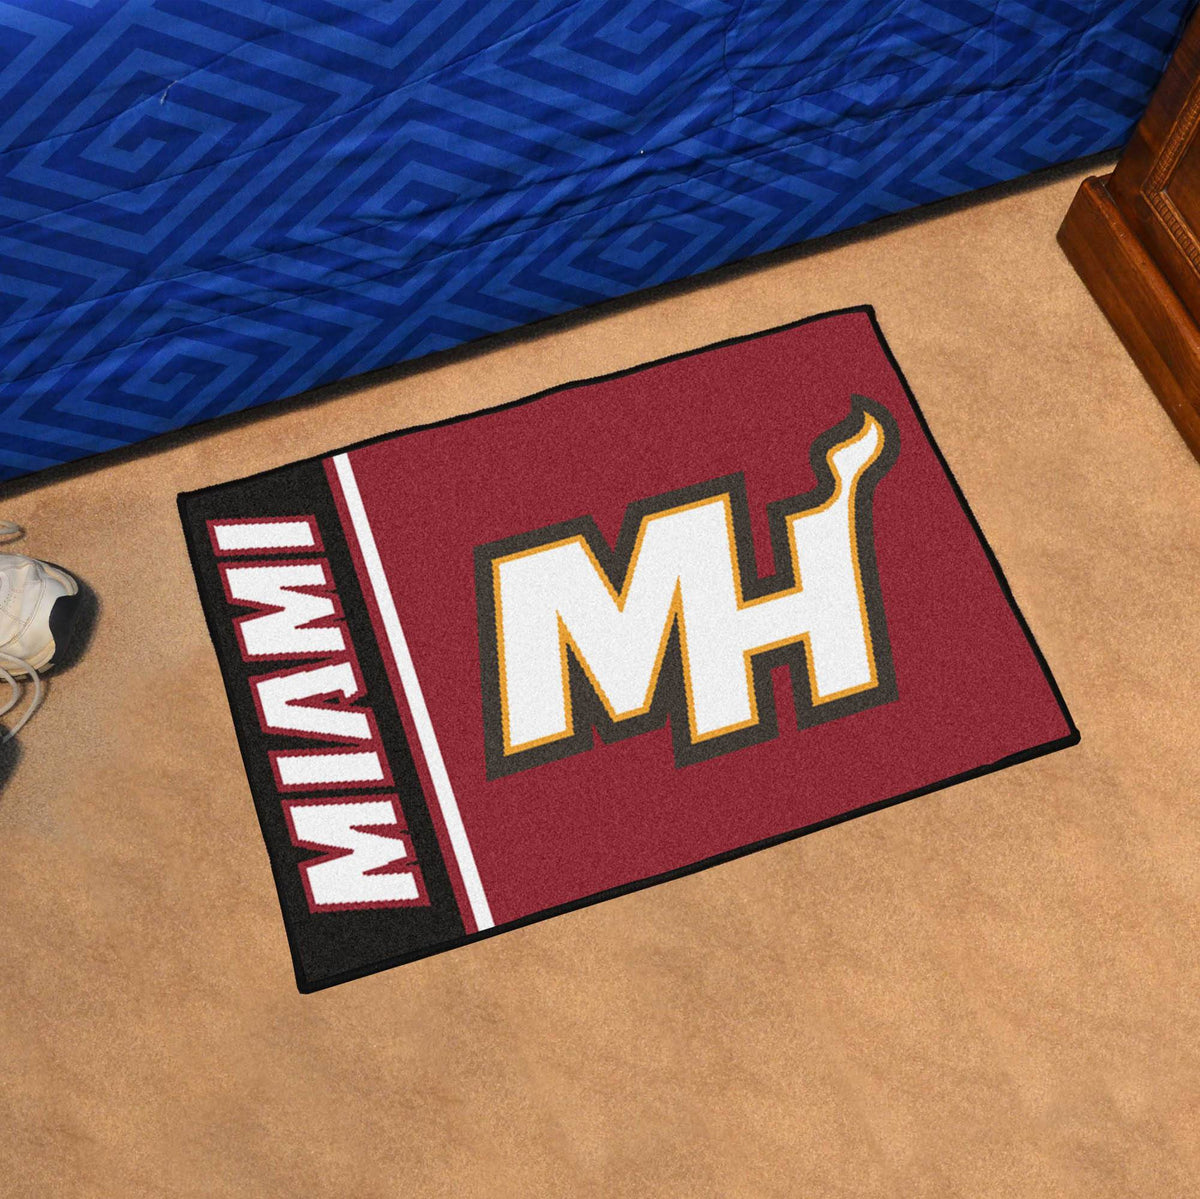 NBA - Uniform Starter Mat NBA Mats, Rectangular Mats, Uniform Starter Mat, NBA, Home Fan Mats Miami Heat